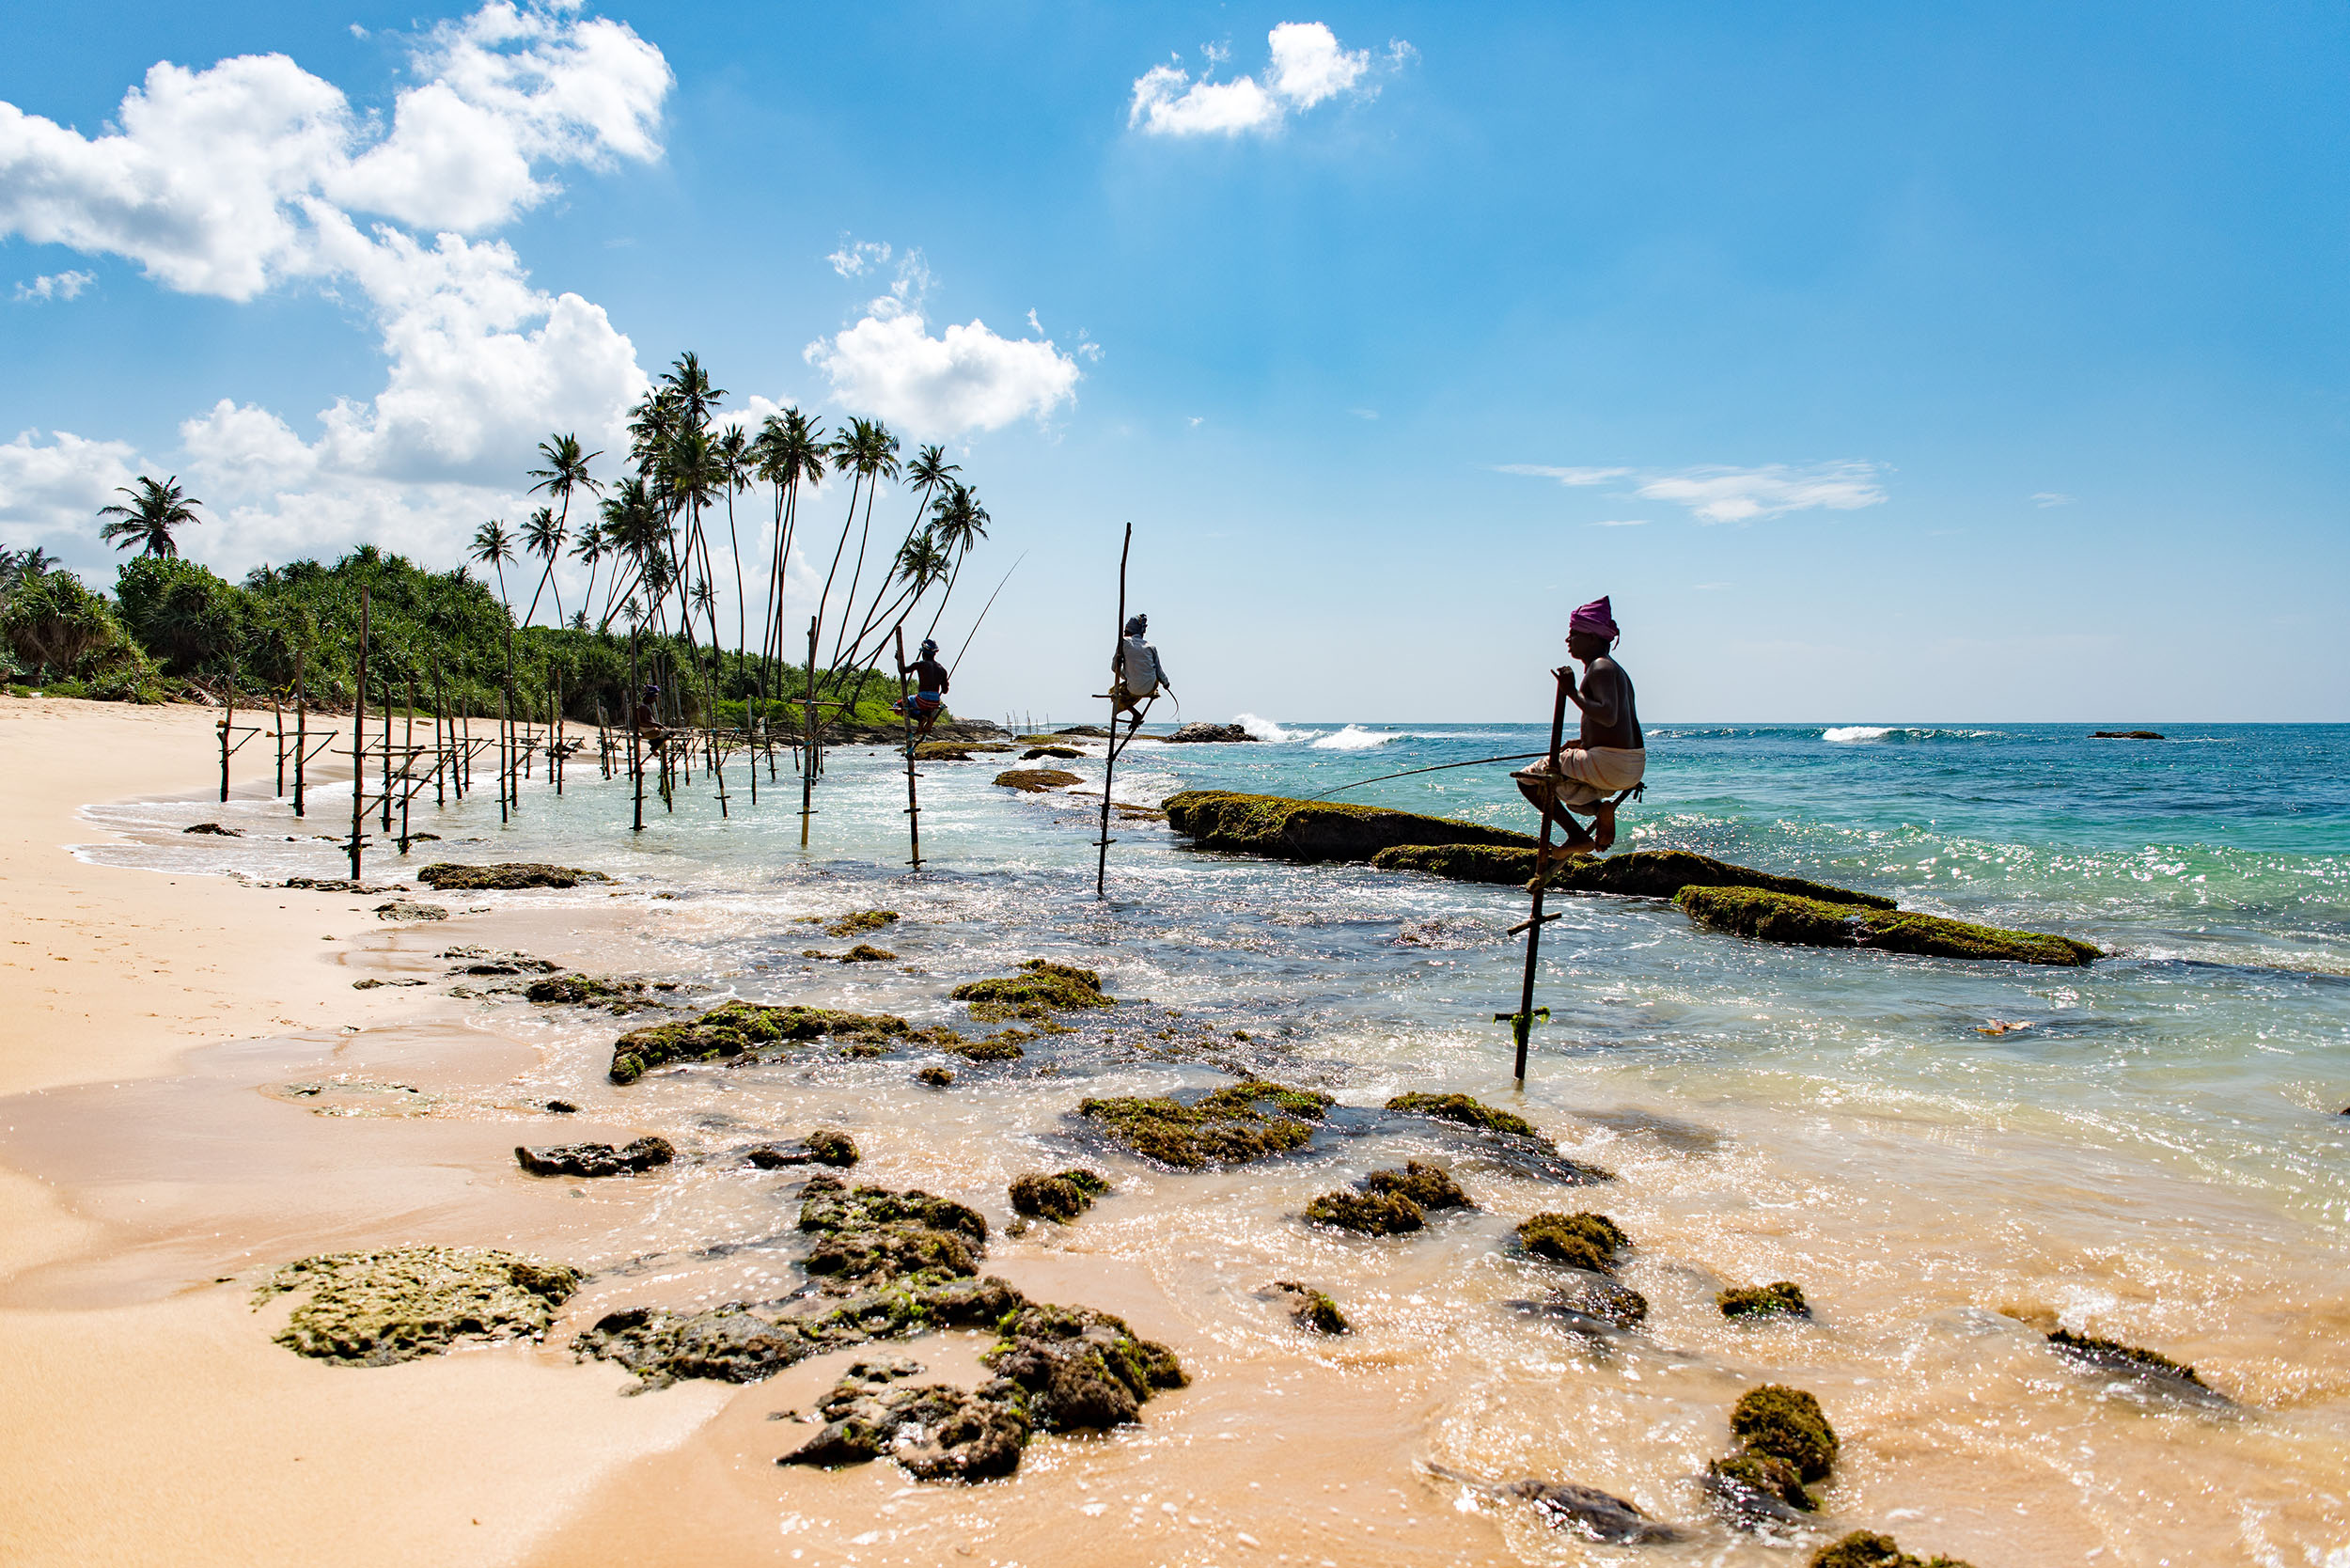 Stilt fisherman on the South Coast of Welligama